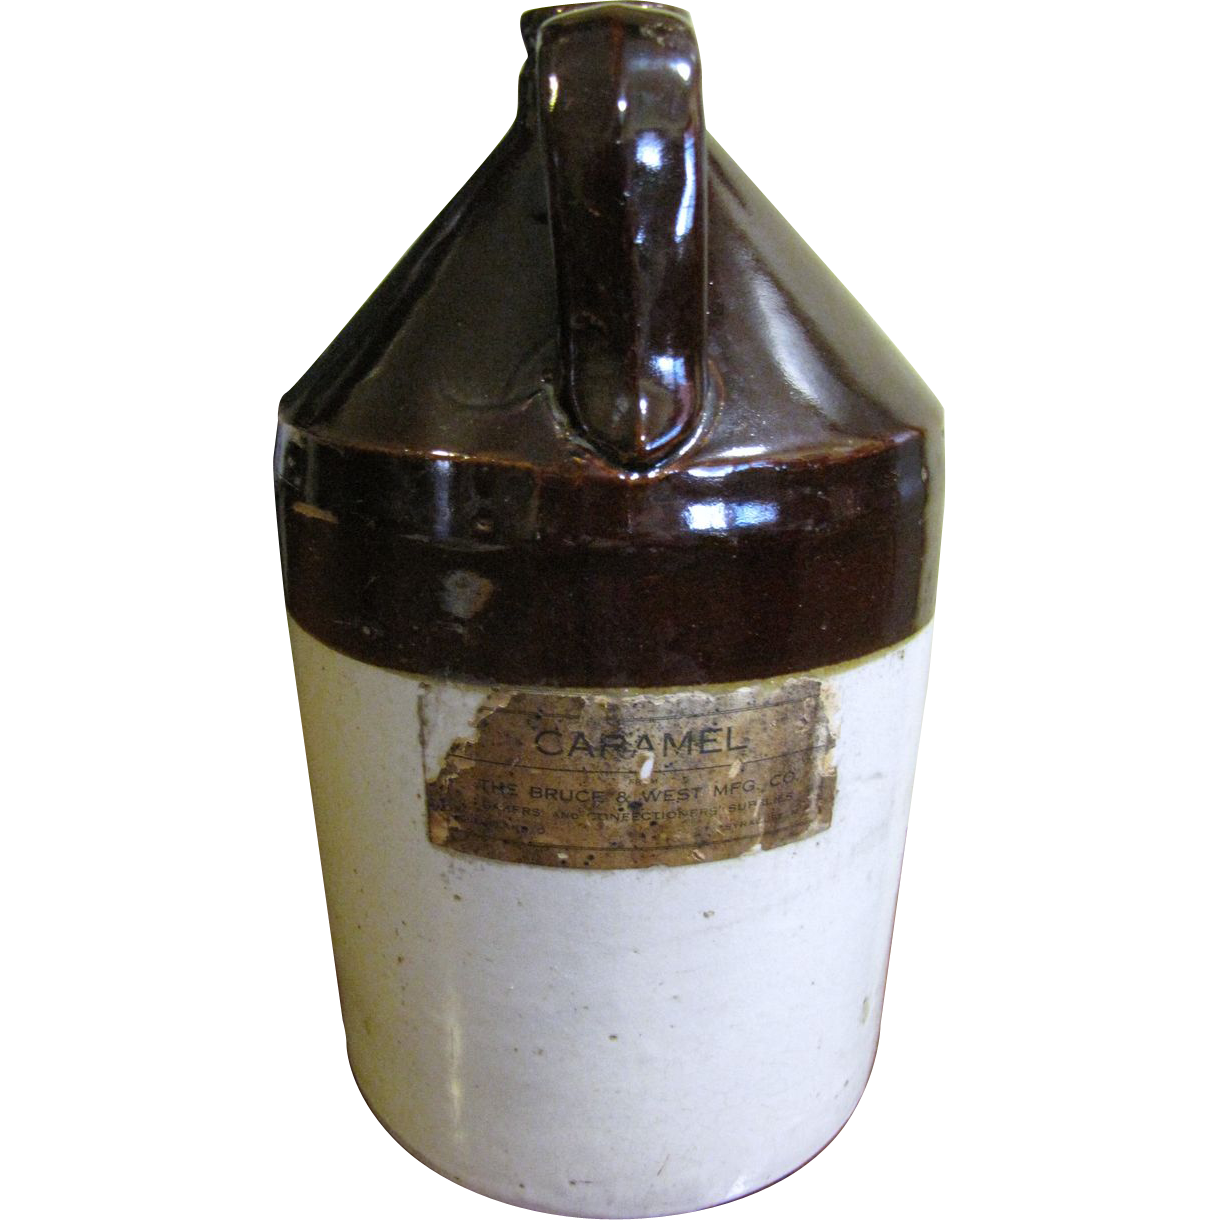 "One Gallon Salt Glazed Stoneware Jug, Original ""Bruce & West Mfg. Co."" Label"